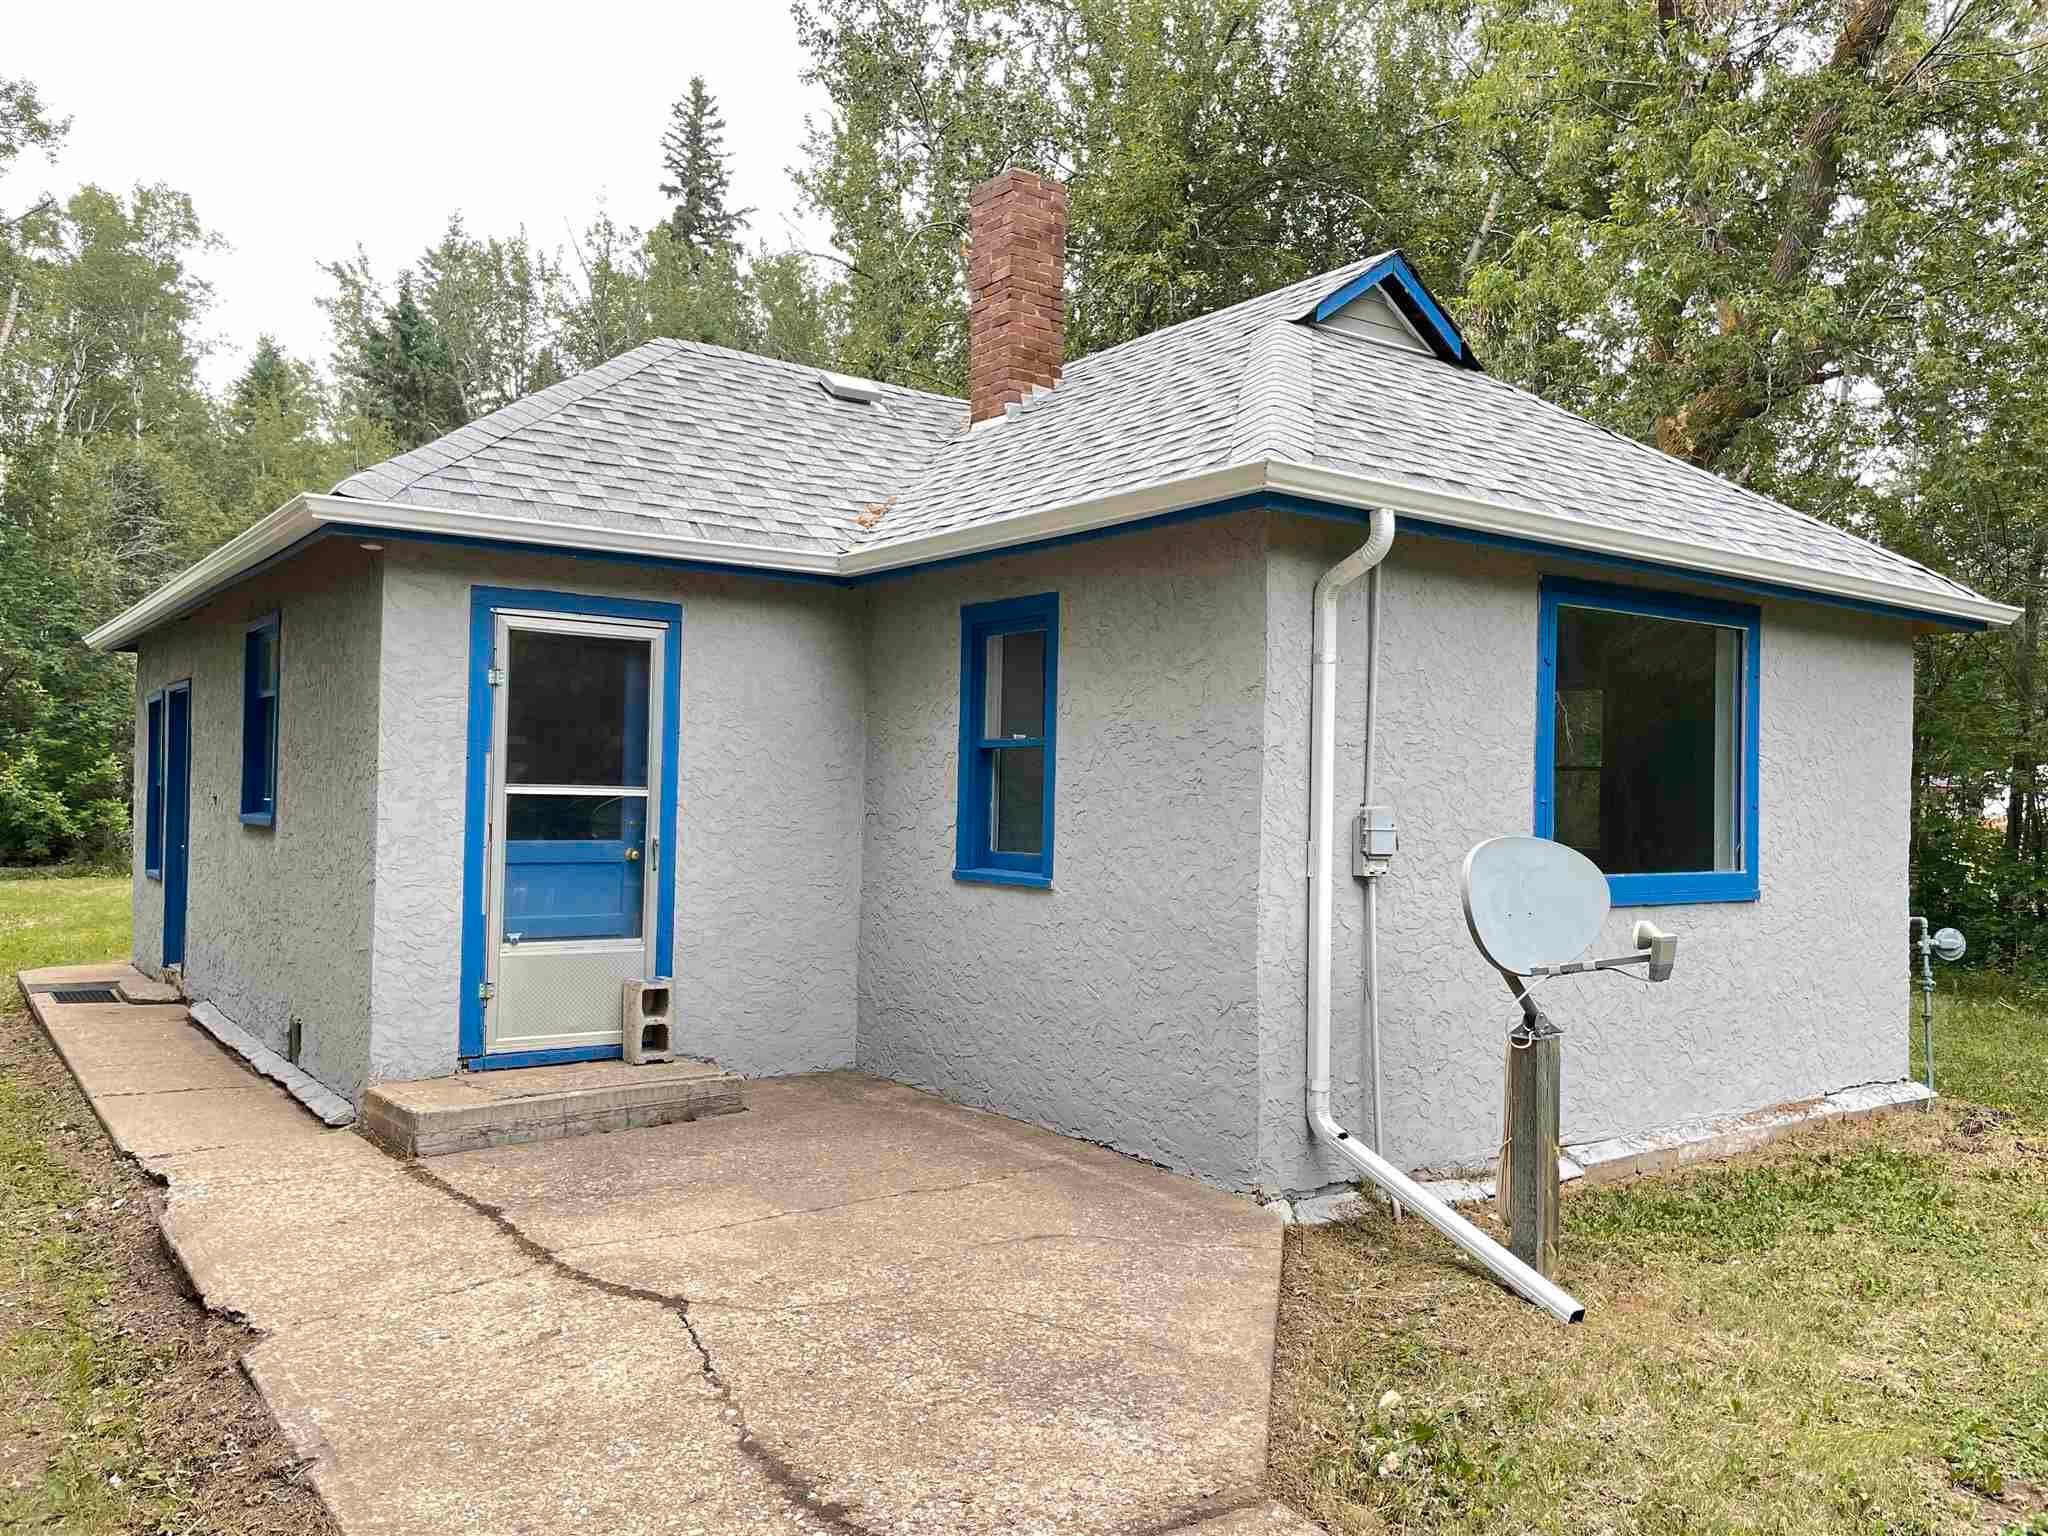 Main Photo: 26510 Twp Rd 611: Rural Westlock County House for sale : MLS®# E4255223